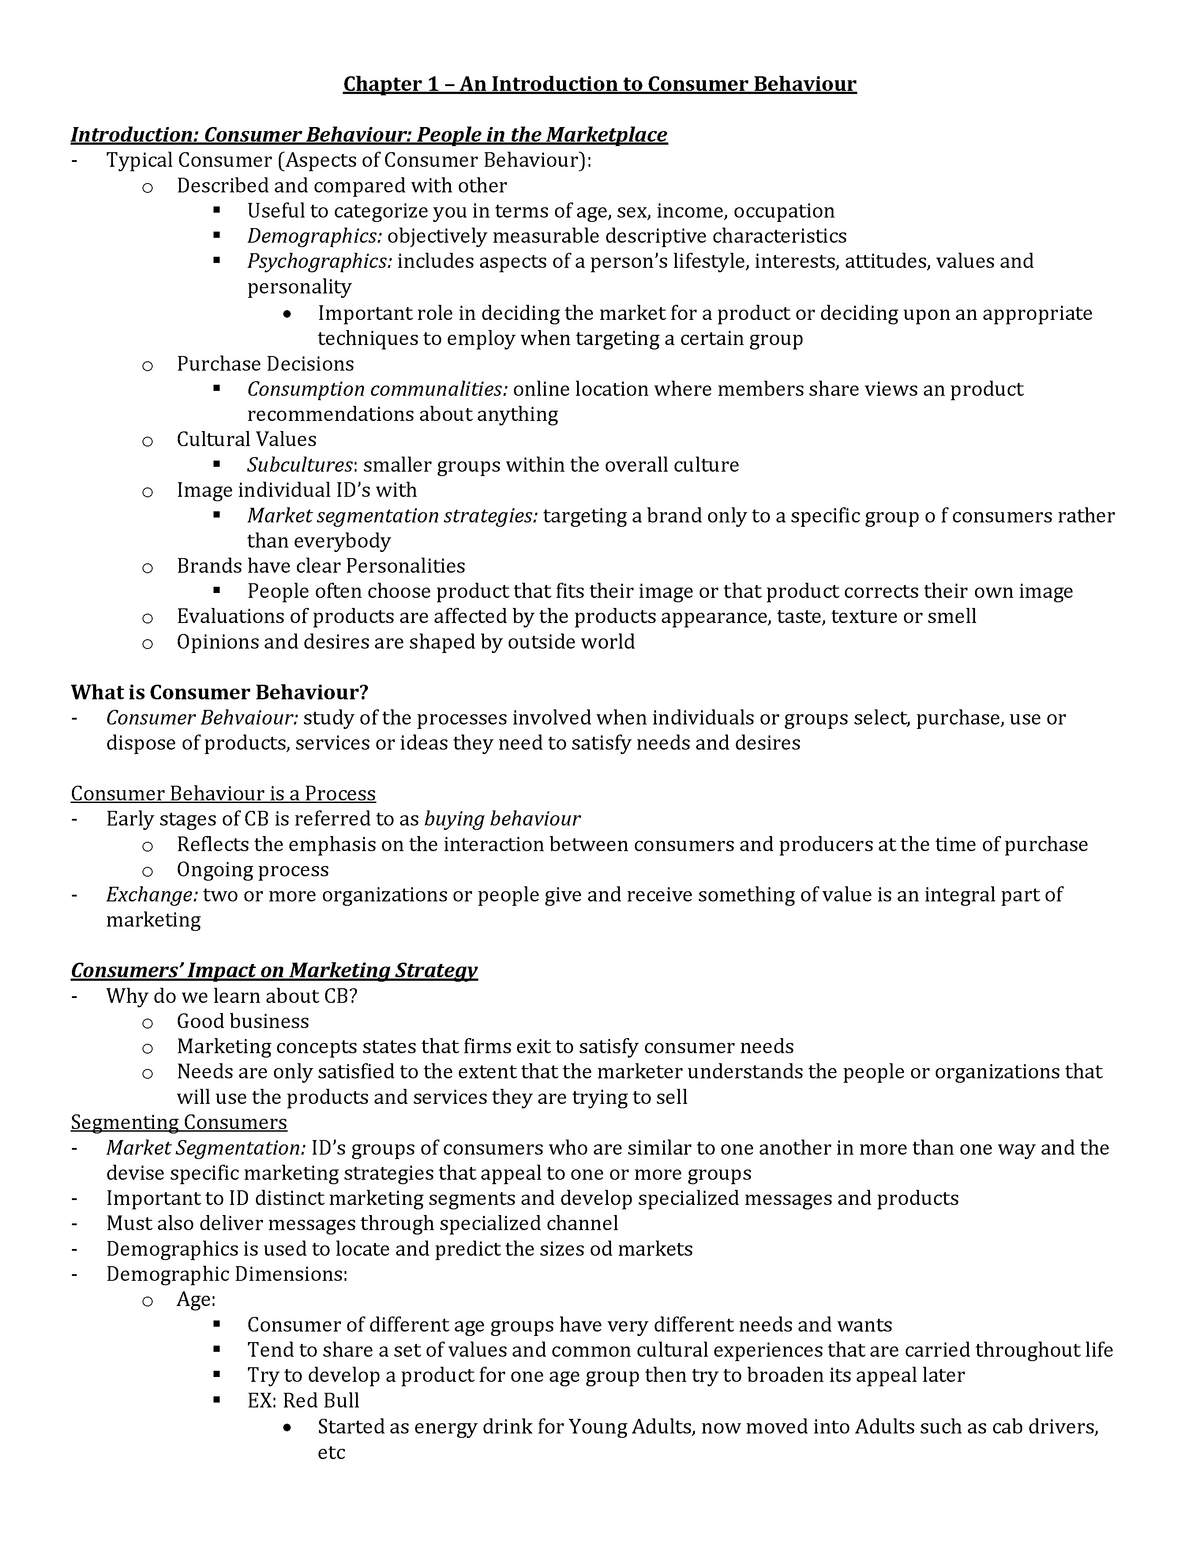 Lecture notes - Consumer Behaviour Chapter 1-5 - Mktg 406 ...